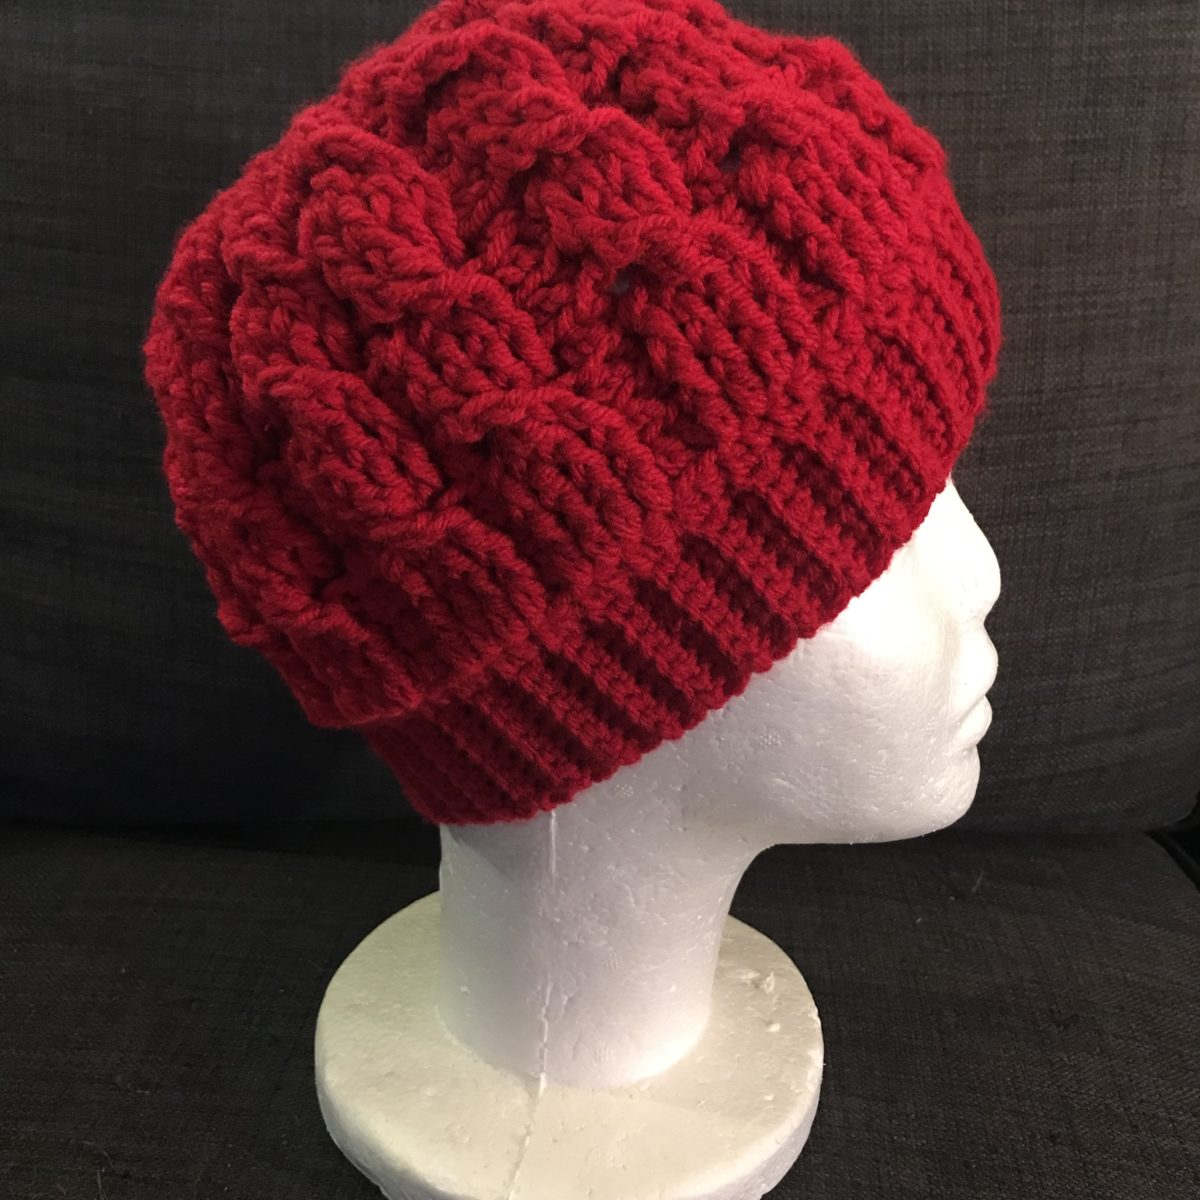 000e9c6c3eb54 How To Crochet Cabled Beanie Messy Bun Hat Tutorial ...